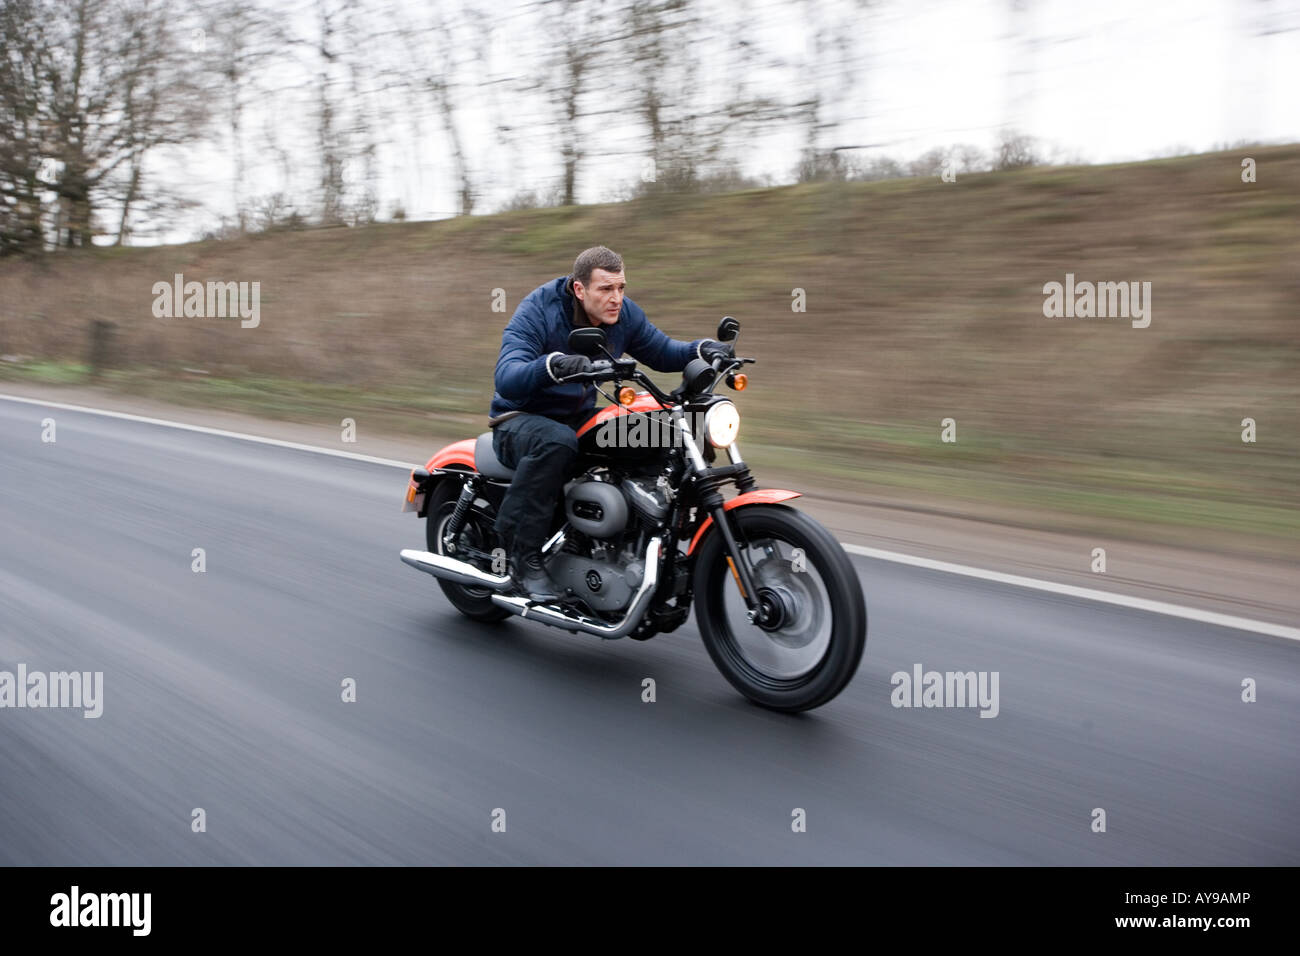 MAN ON HARLEY DAVIDSON Stock Photo: 17035221 - Alamy